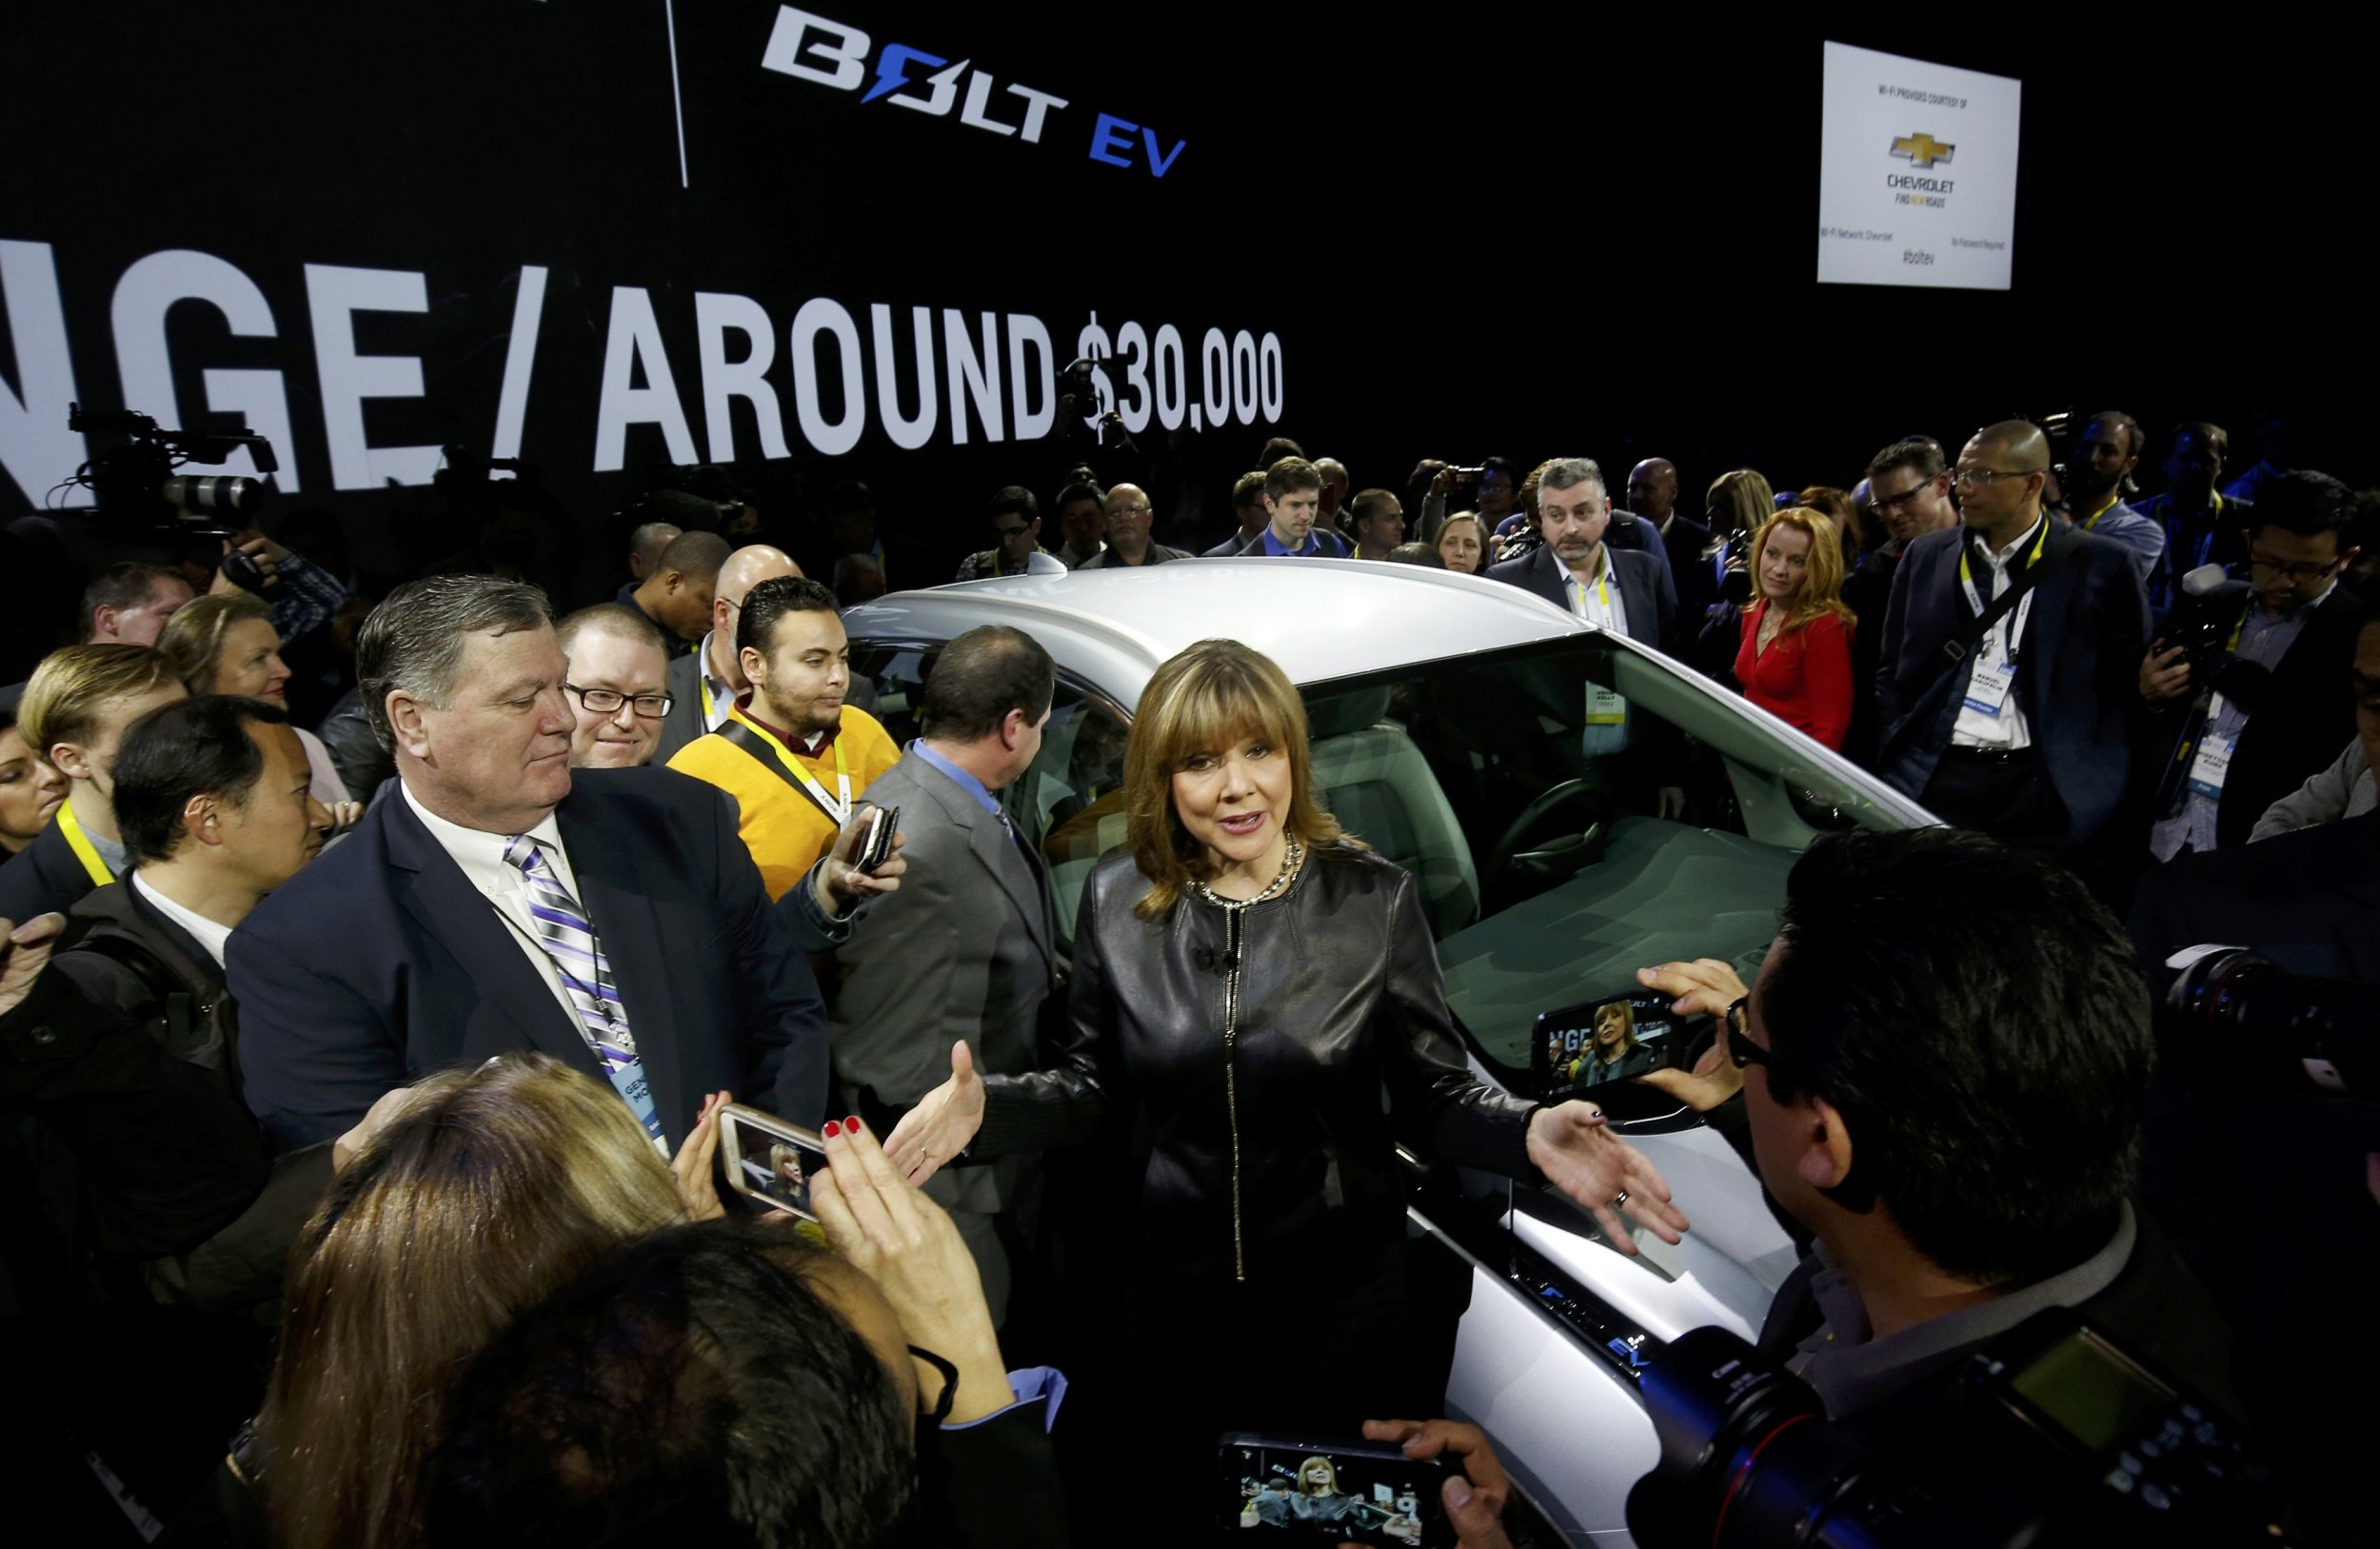 Chevy Bolt unveiled at CES